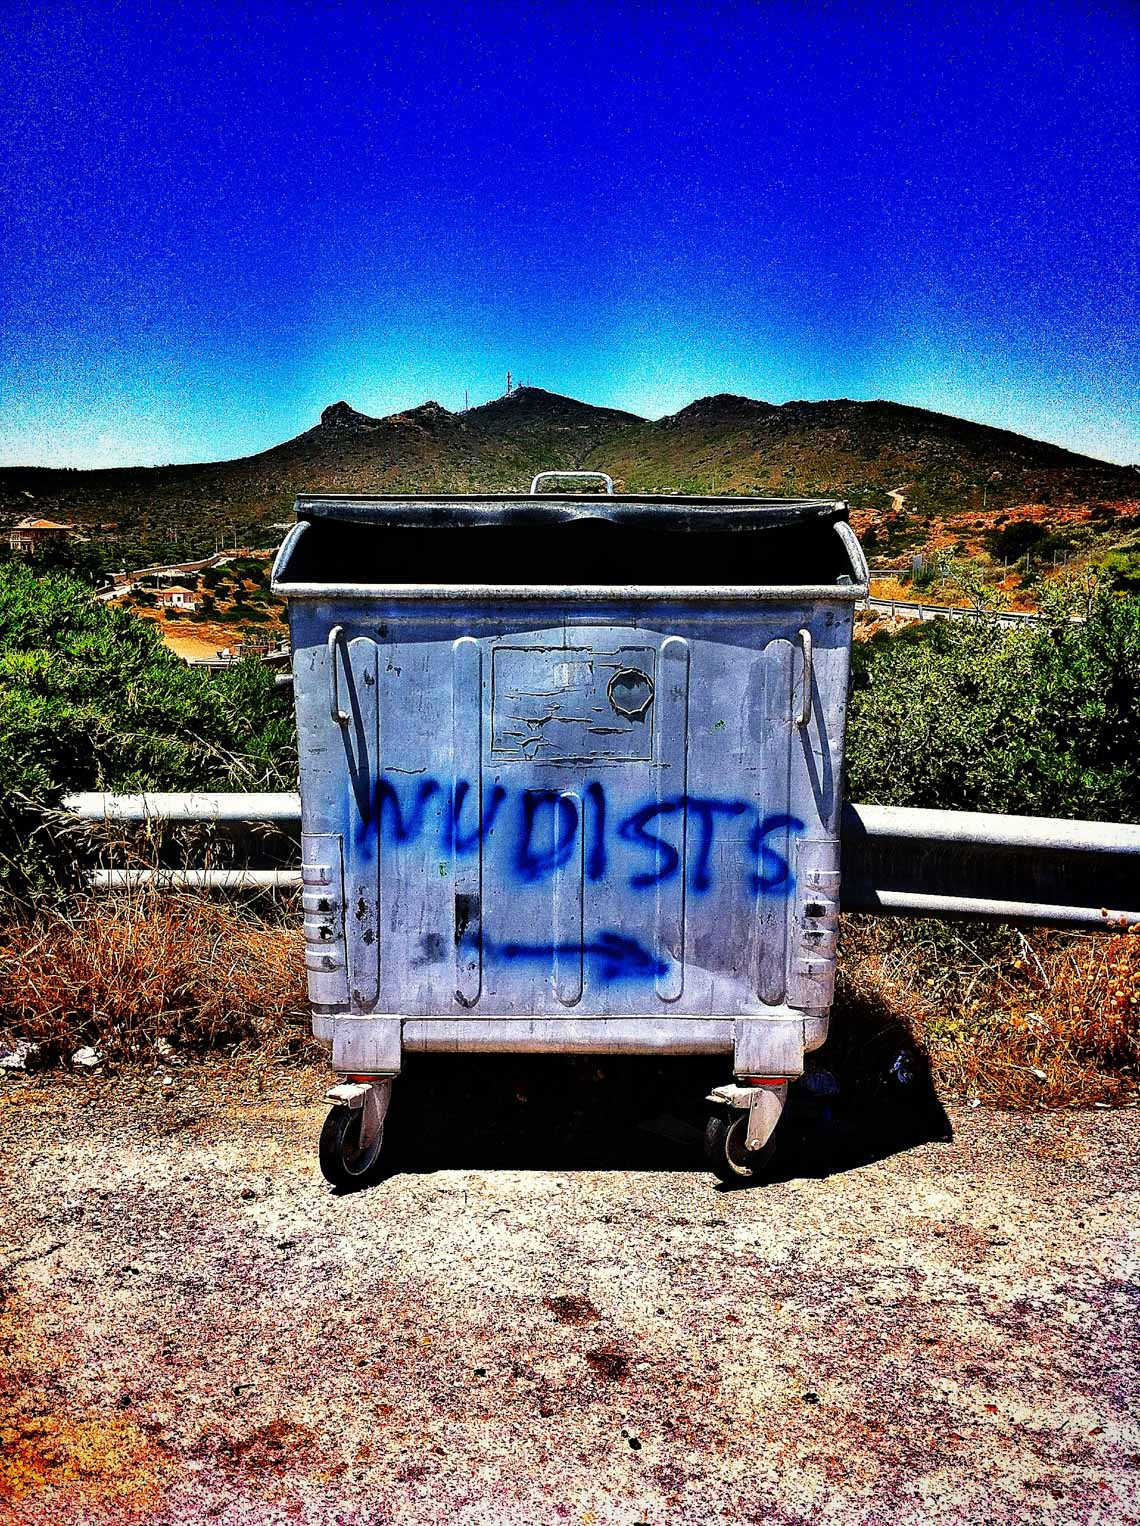 Garbage Dumpster with Nudists Sign Painted on It.